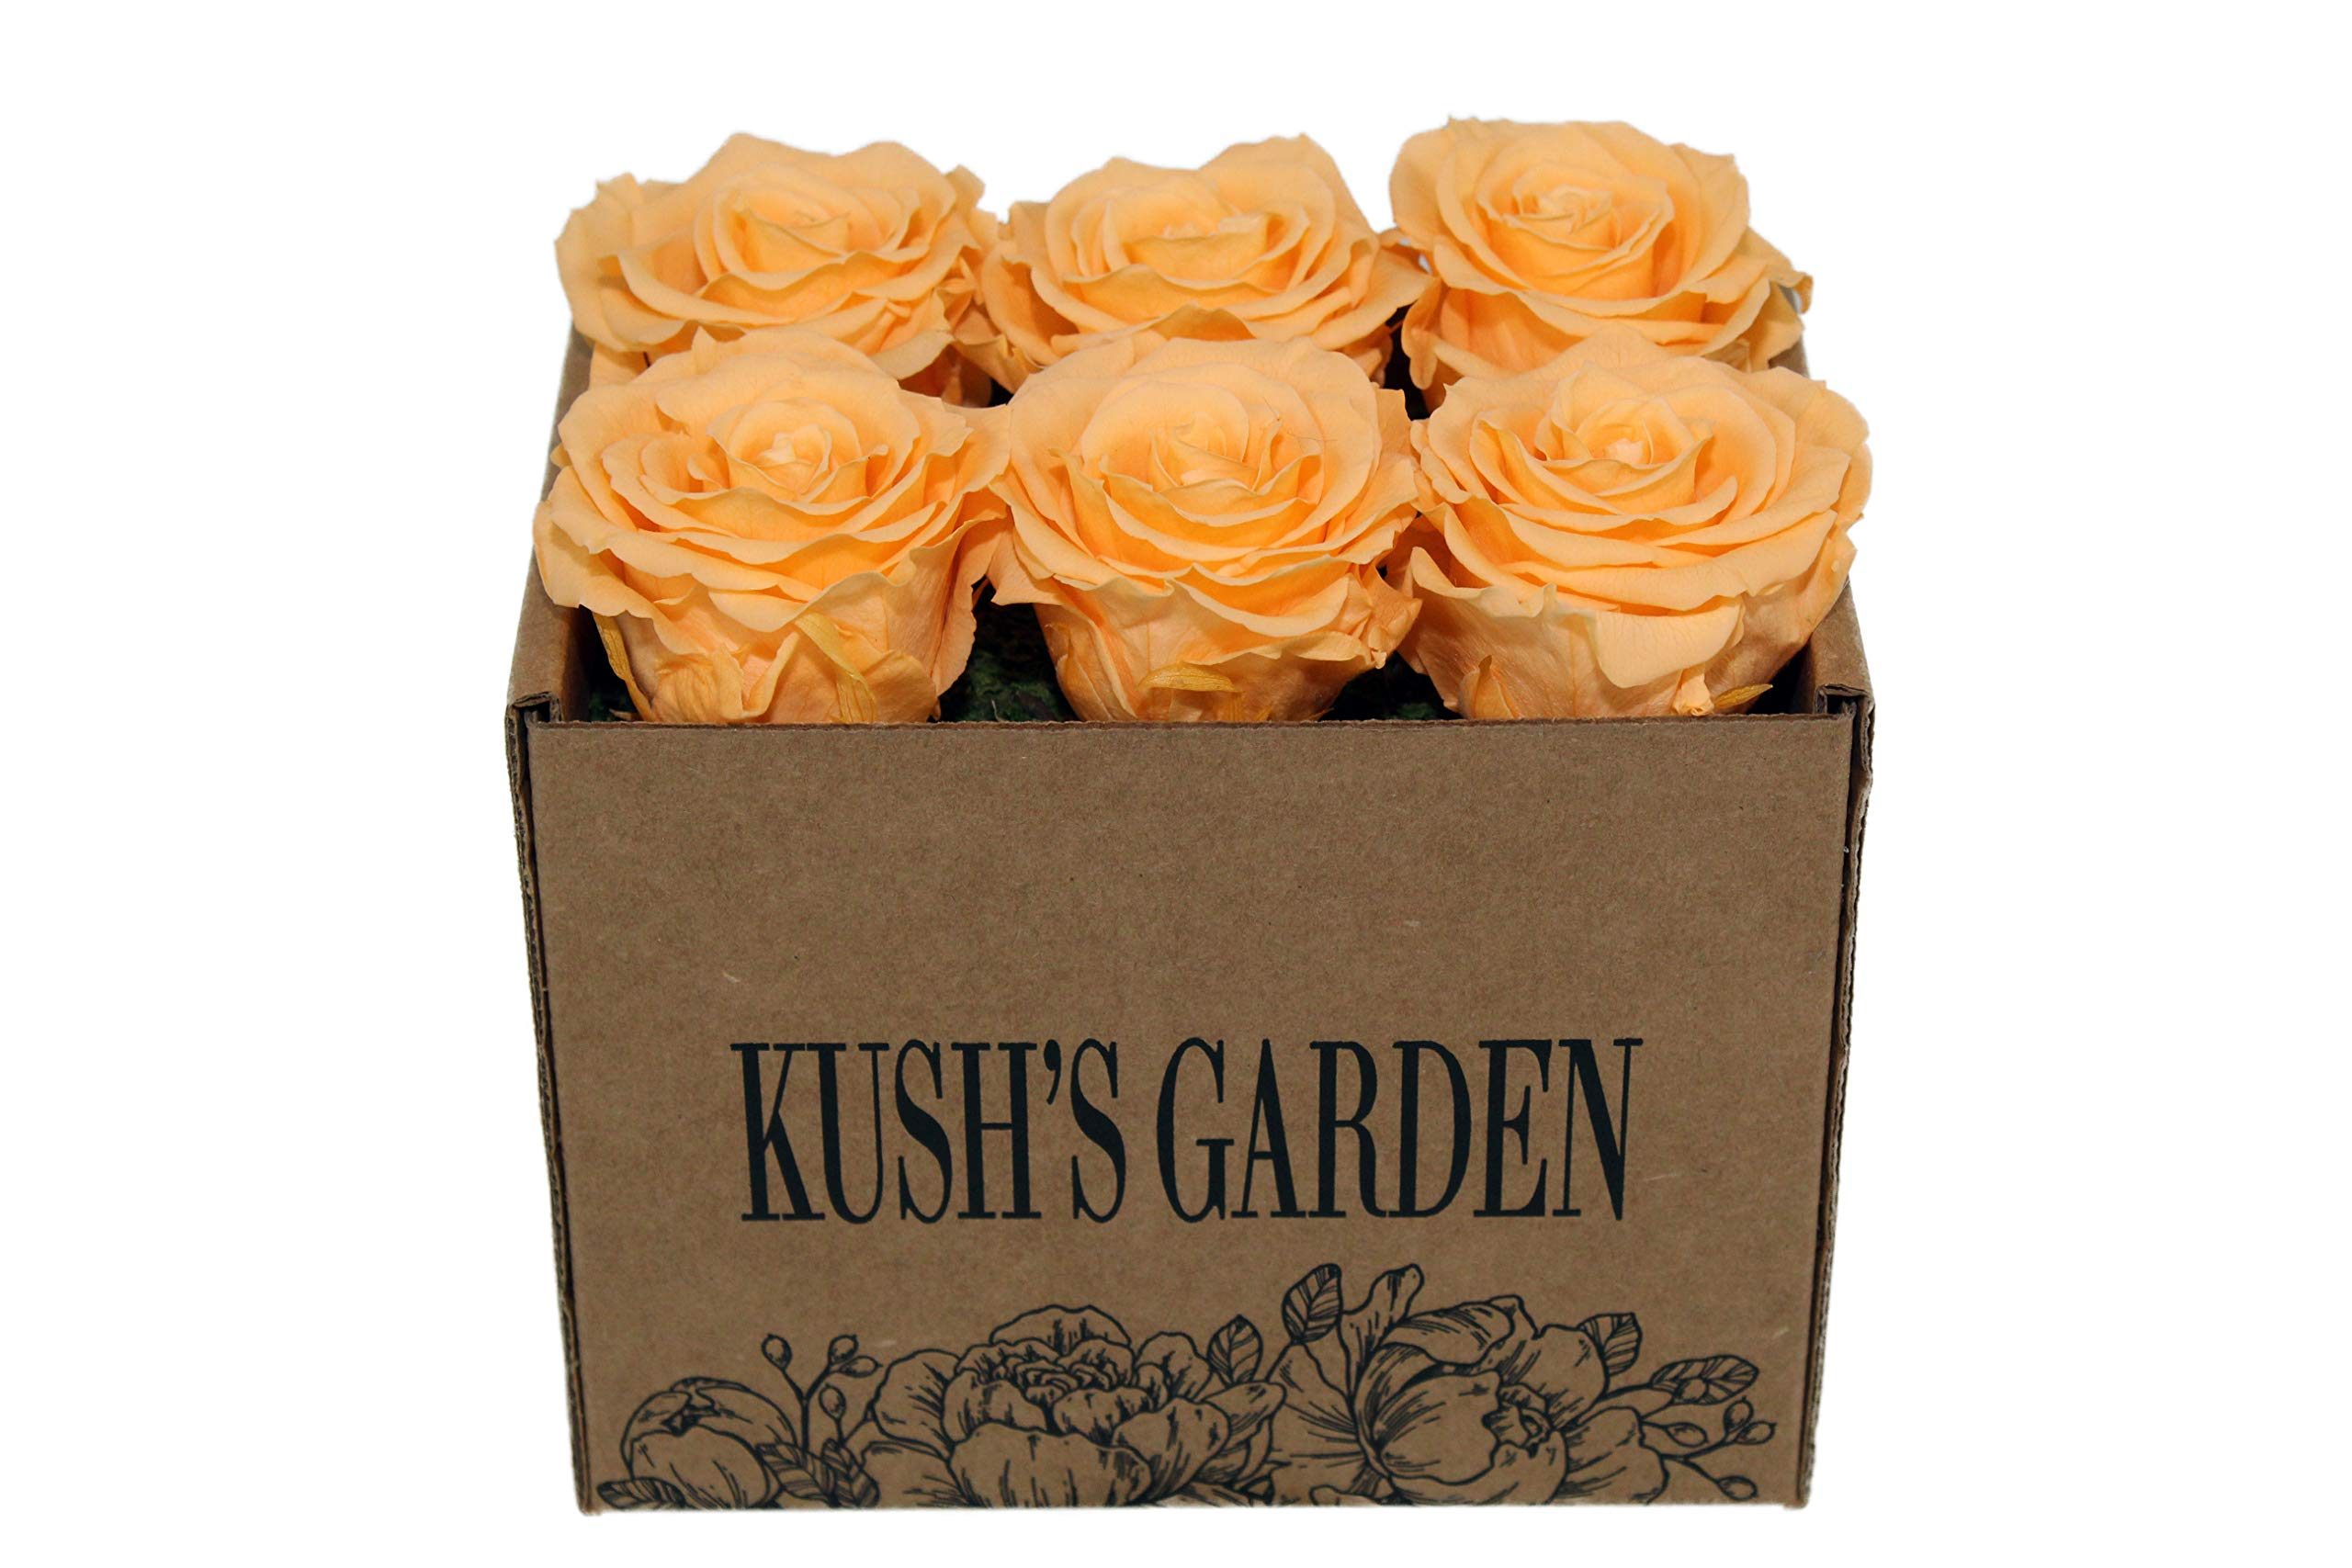 KUSHS GARDEN Real Preserved Roses in Box (Orange You Glad It's Pastel) by KUSHS GARDEN